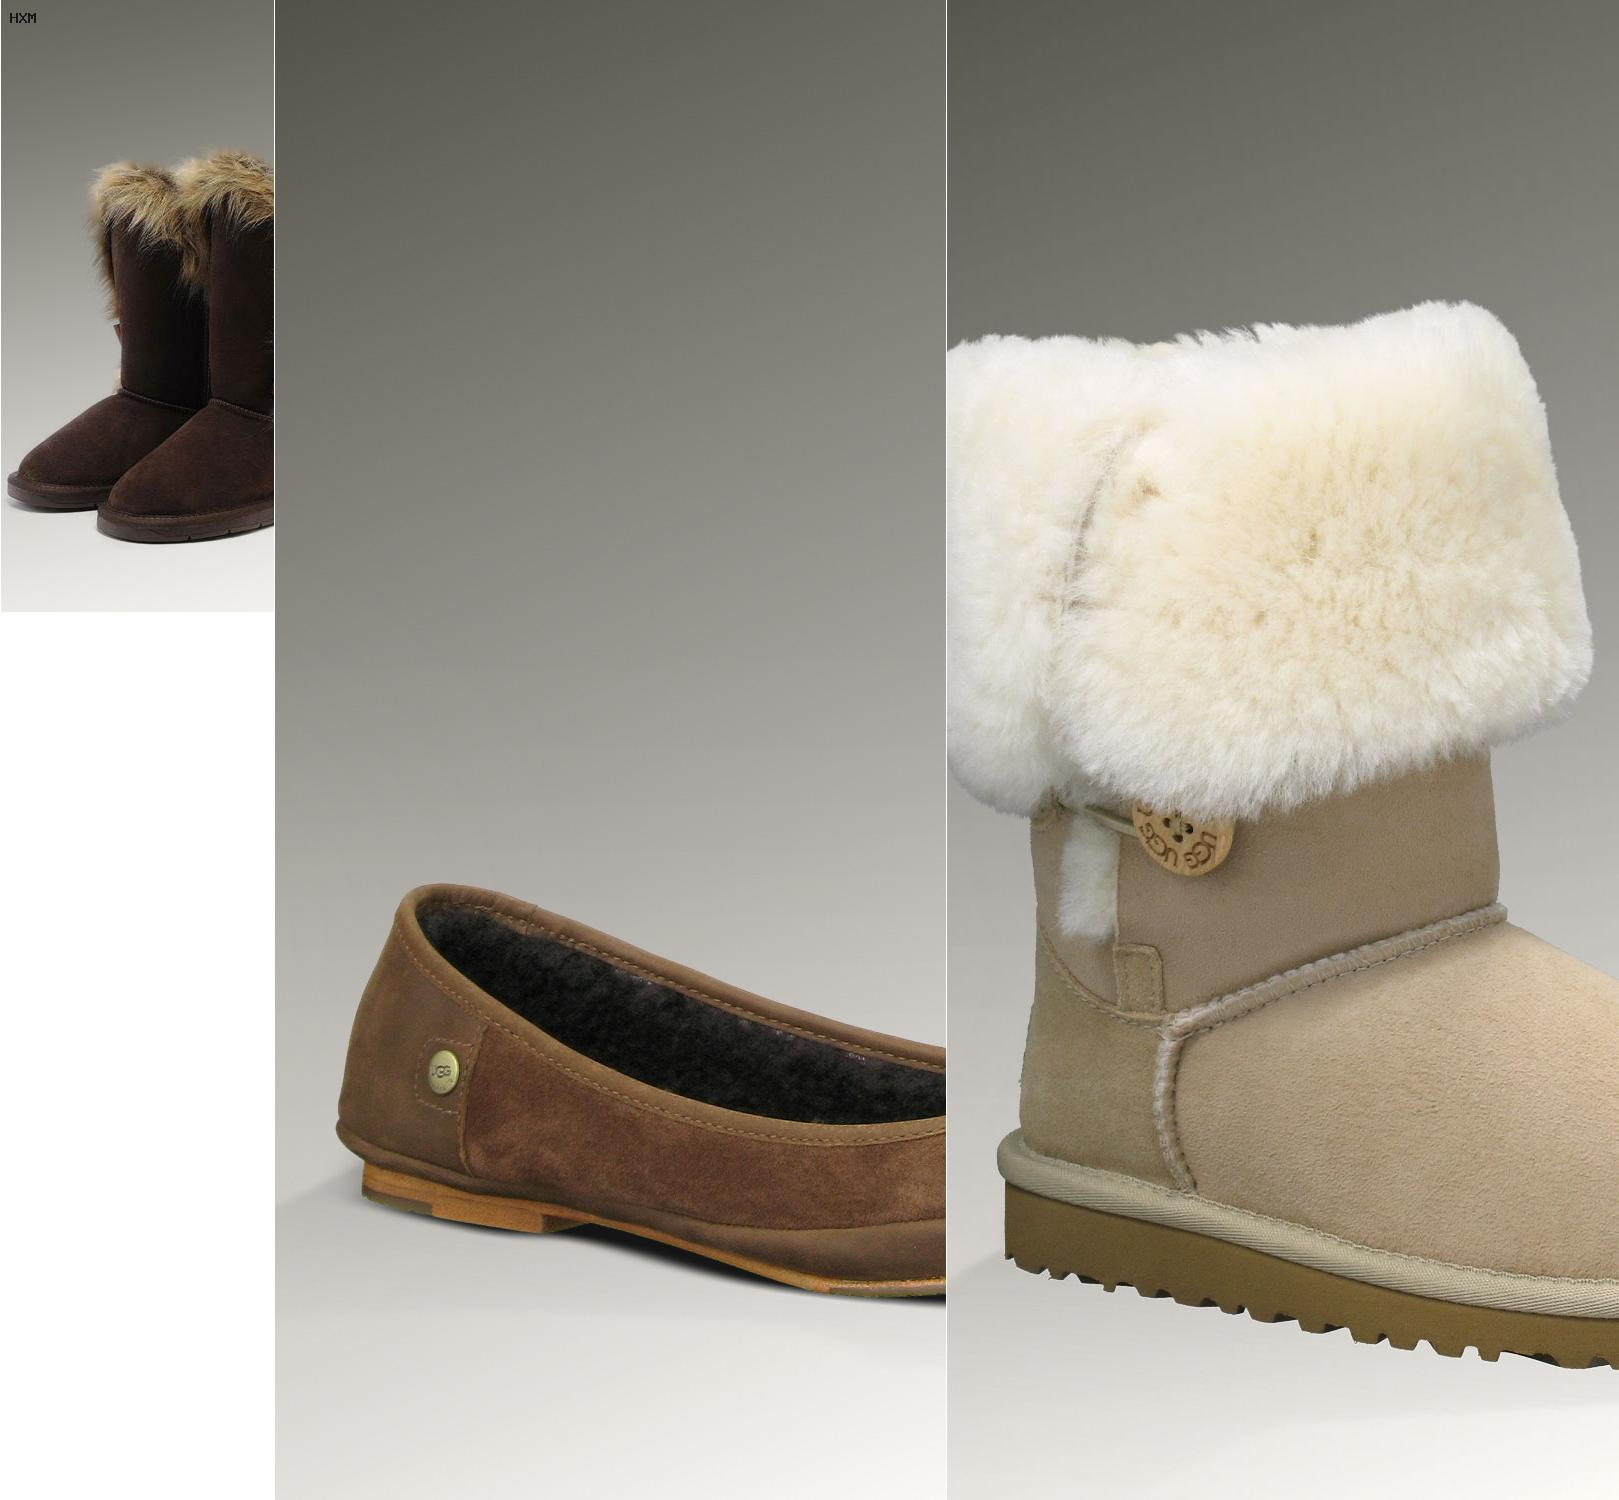 fd collection ugg